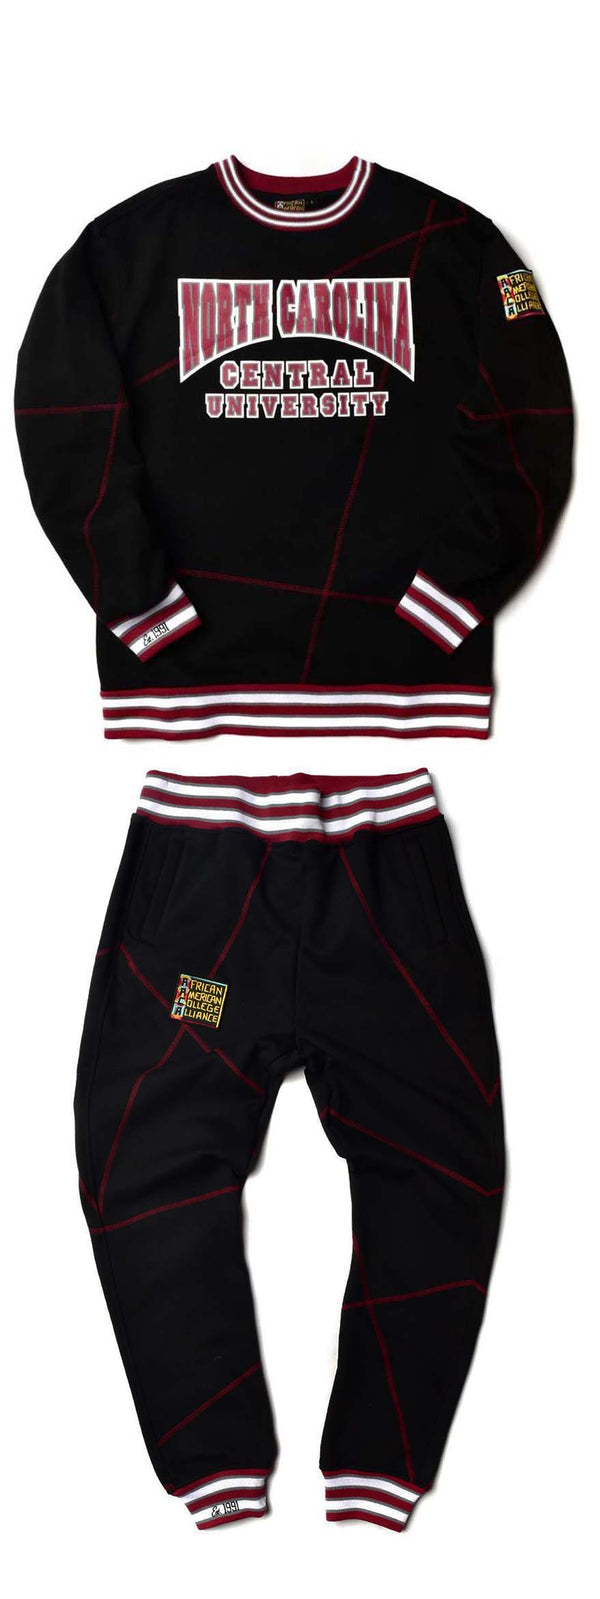 "North Carolina Central University Original '92 ""Frankenstein"" Crewneck Sweat Suit Black/Maroon"